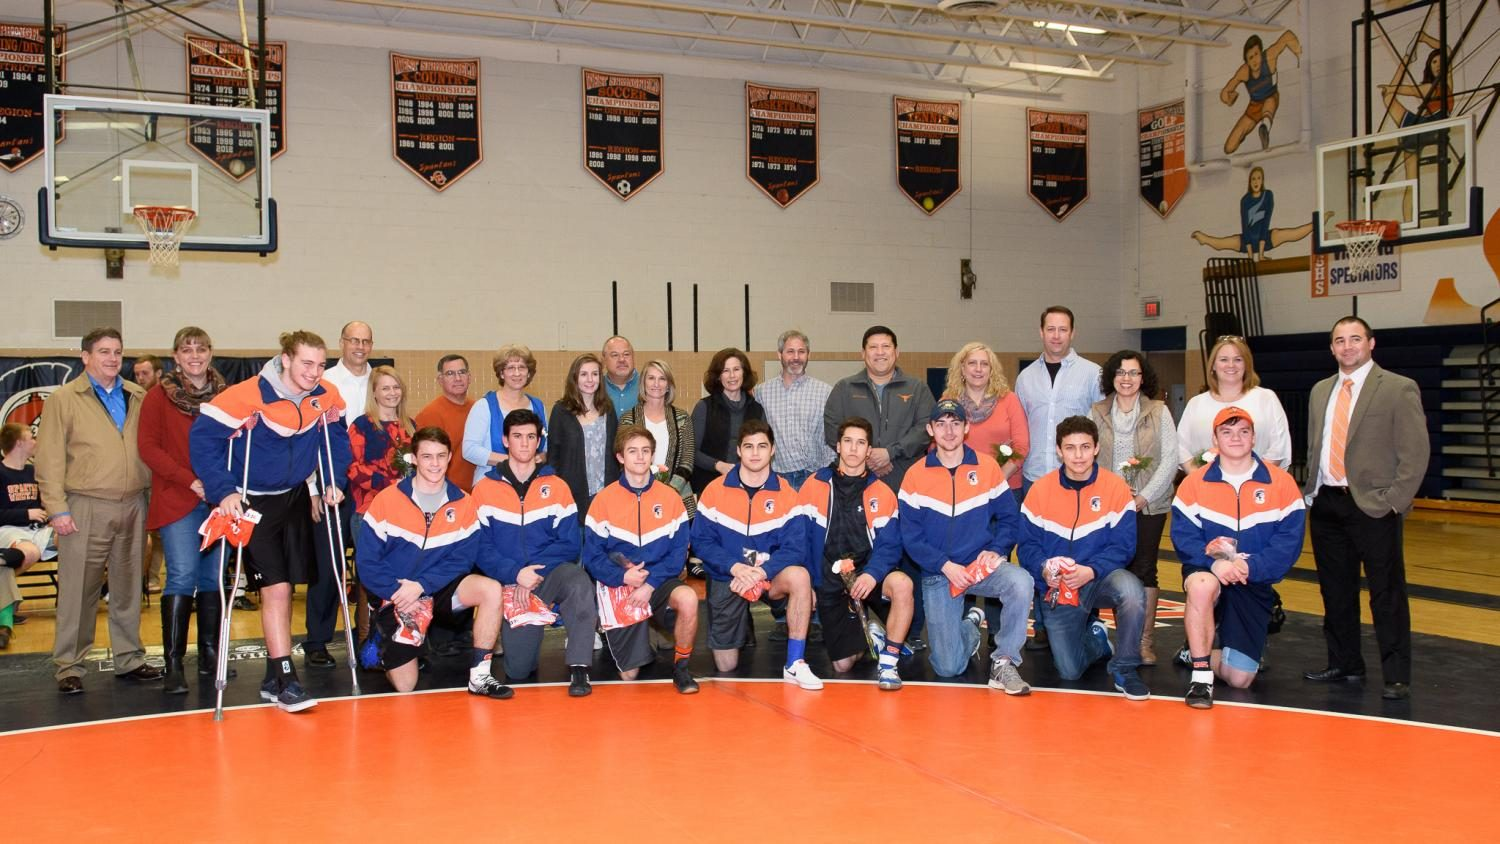 The+senior+class+of+the+wrestling+team+before+their+final+home+competition.++The+seniors+led+the+wrestling+team+to+a+6-1+conference+record+and+two+of+the+three+Spartan+wrestlers+who+went+to+the+state+tournament+were+seniors.